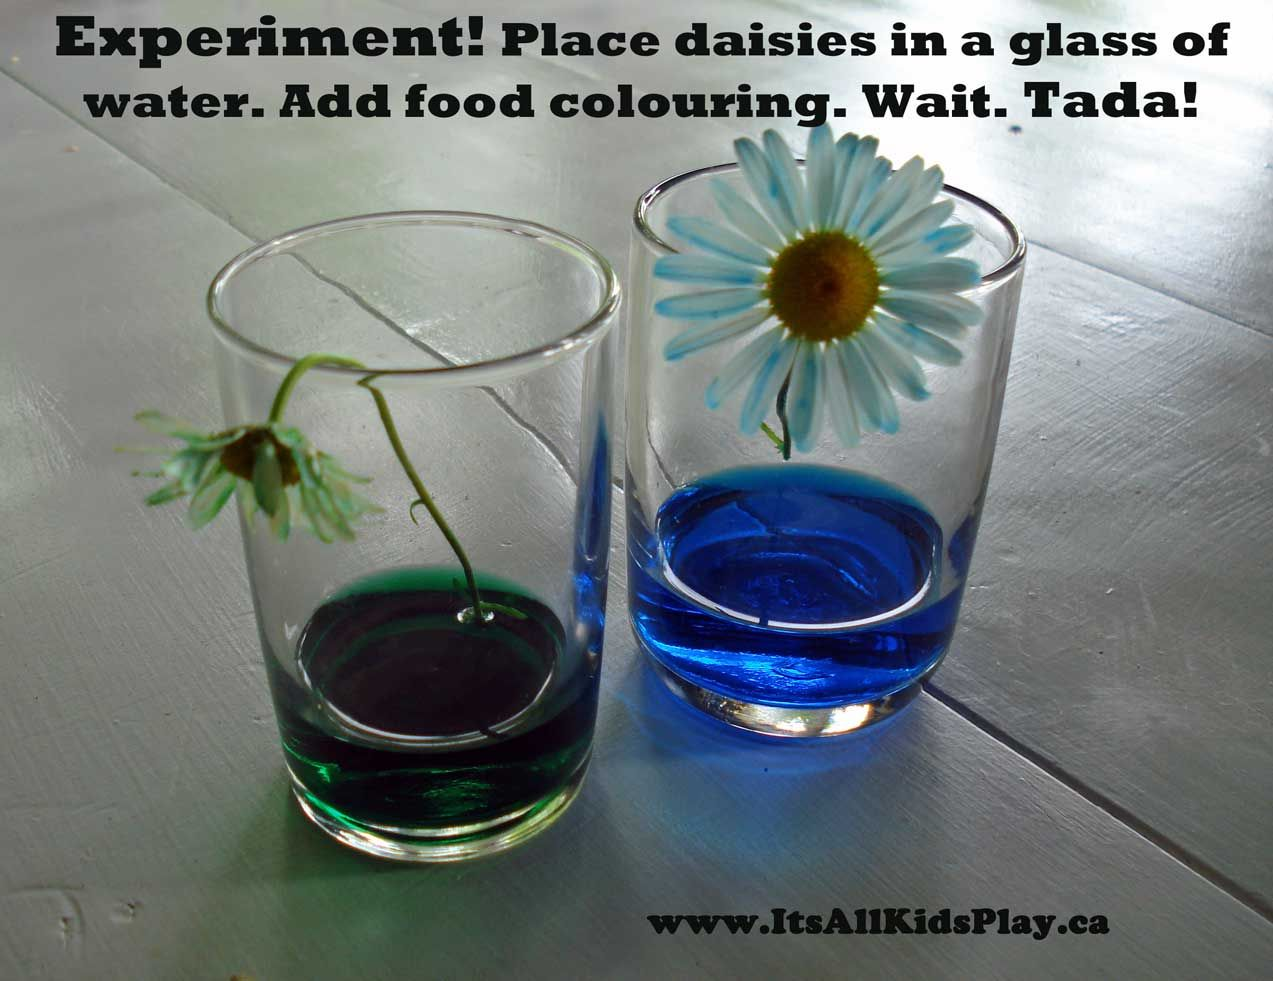 69 best images about Experiments for Kids--Science Fun! on ...